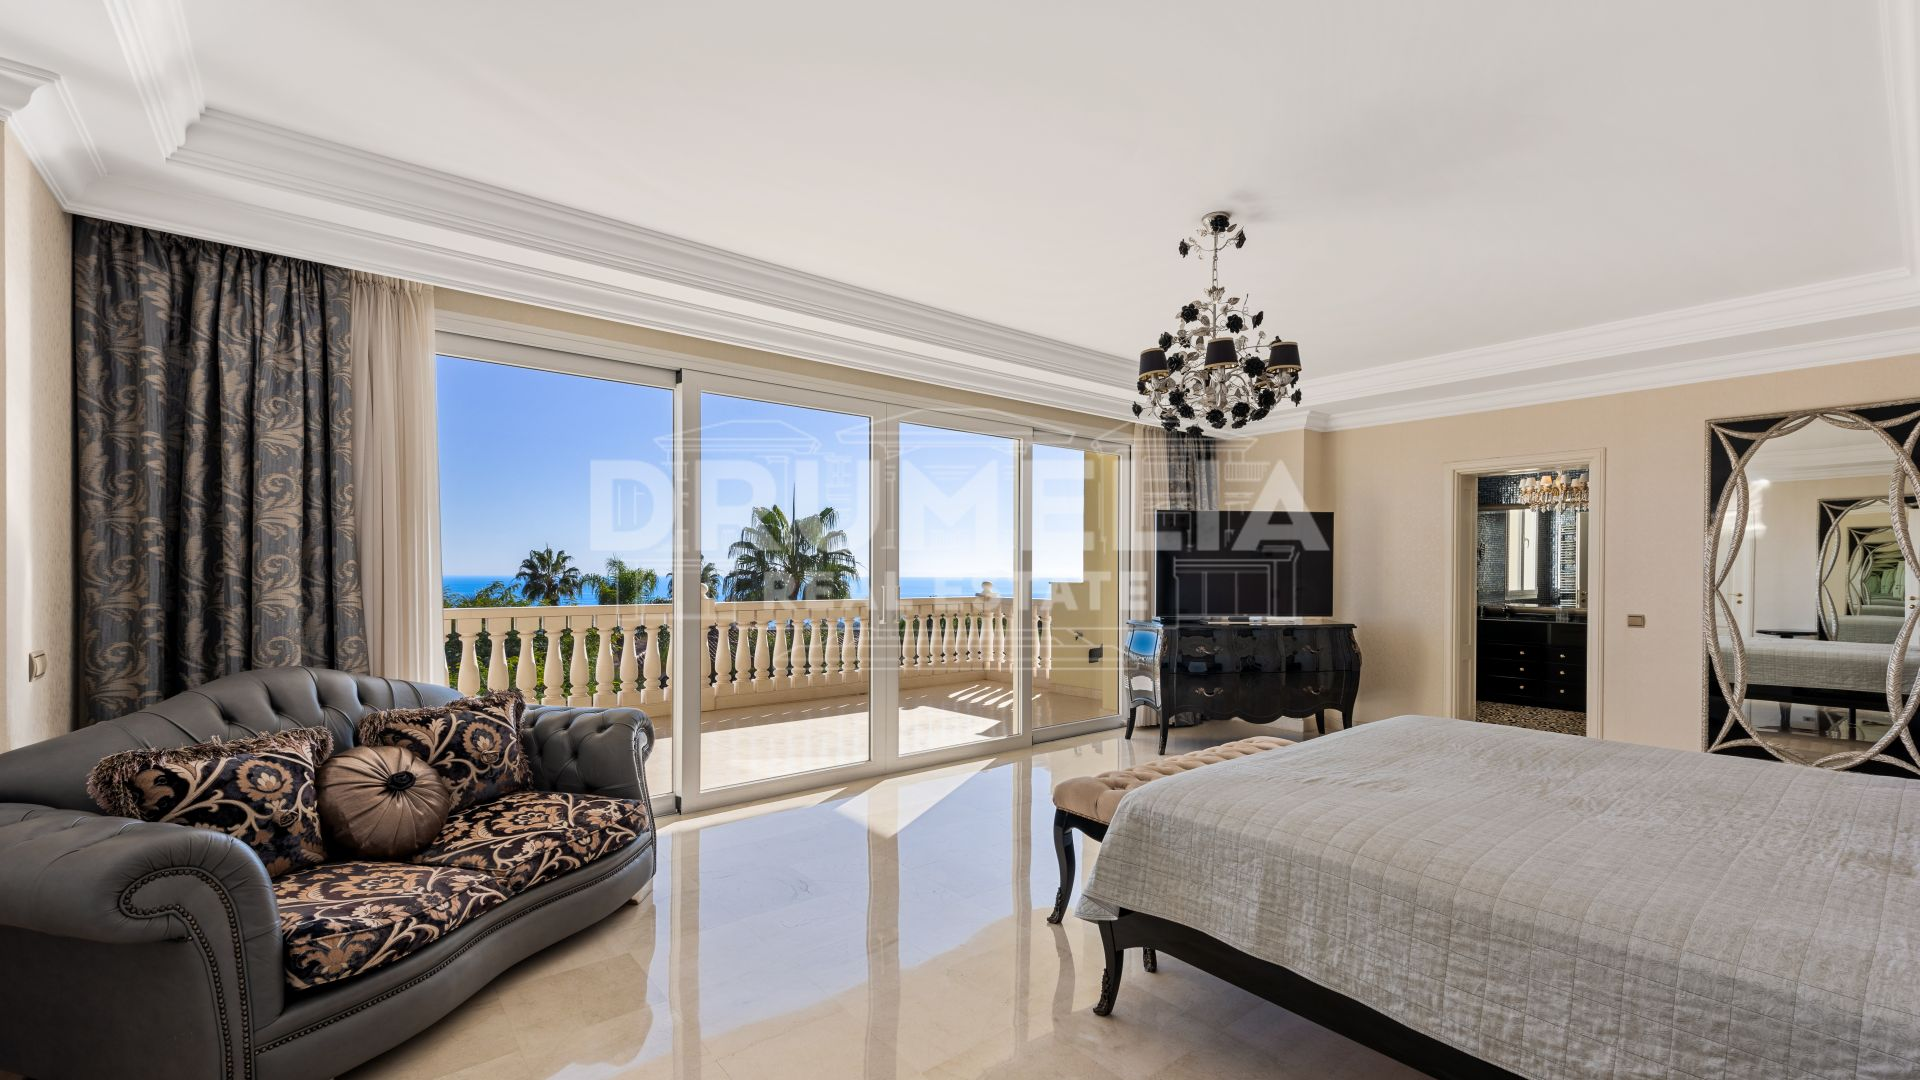 Marbella Golden Mile, Stunning Mediterranean Luxury Mansion, Sierra Blanca, Marbella Golden Mile